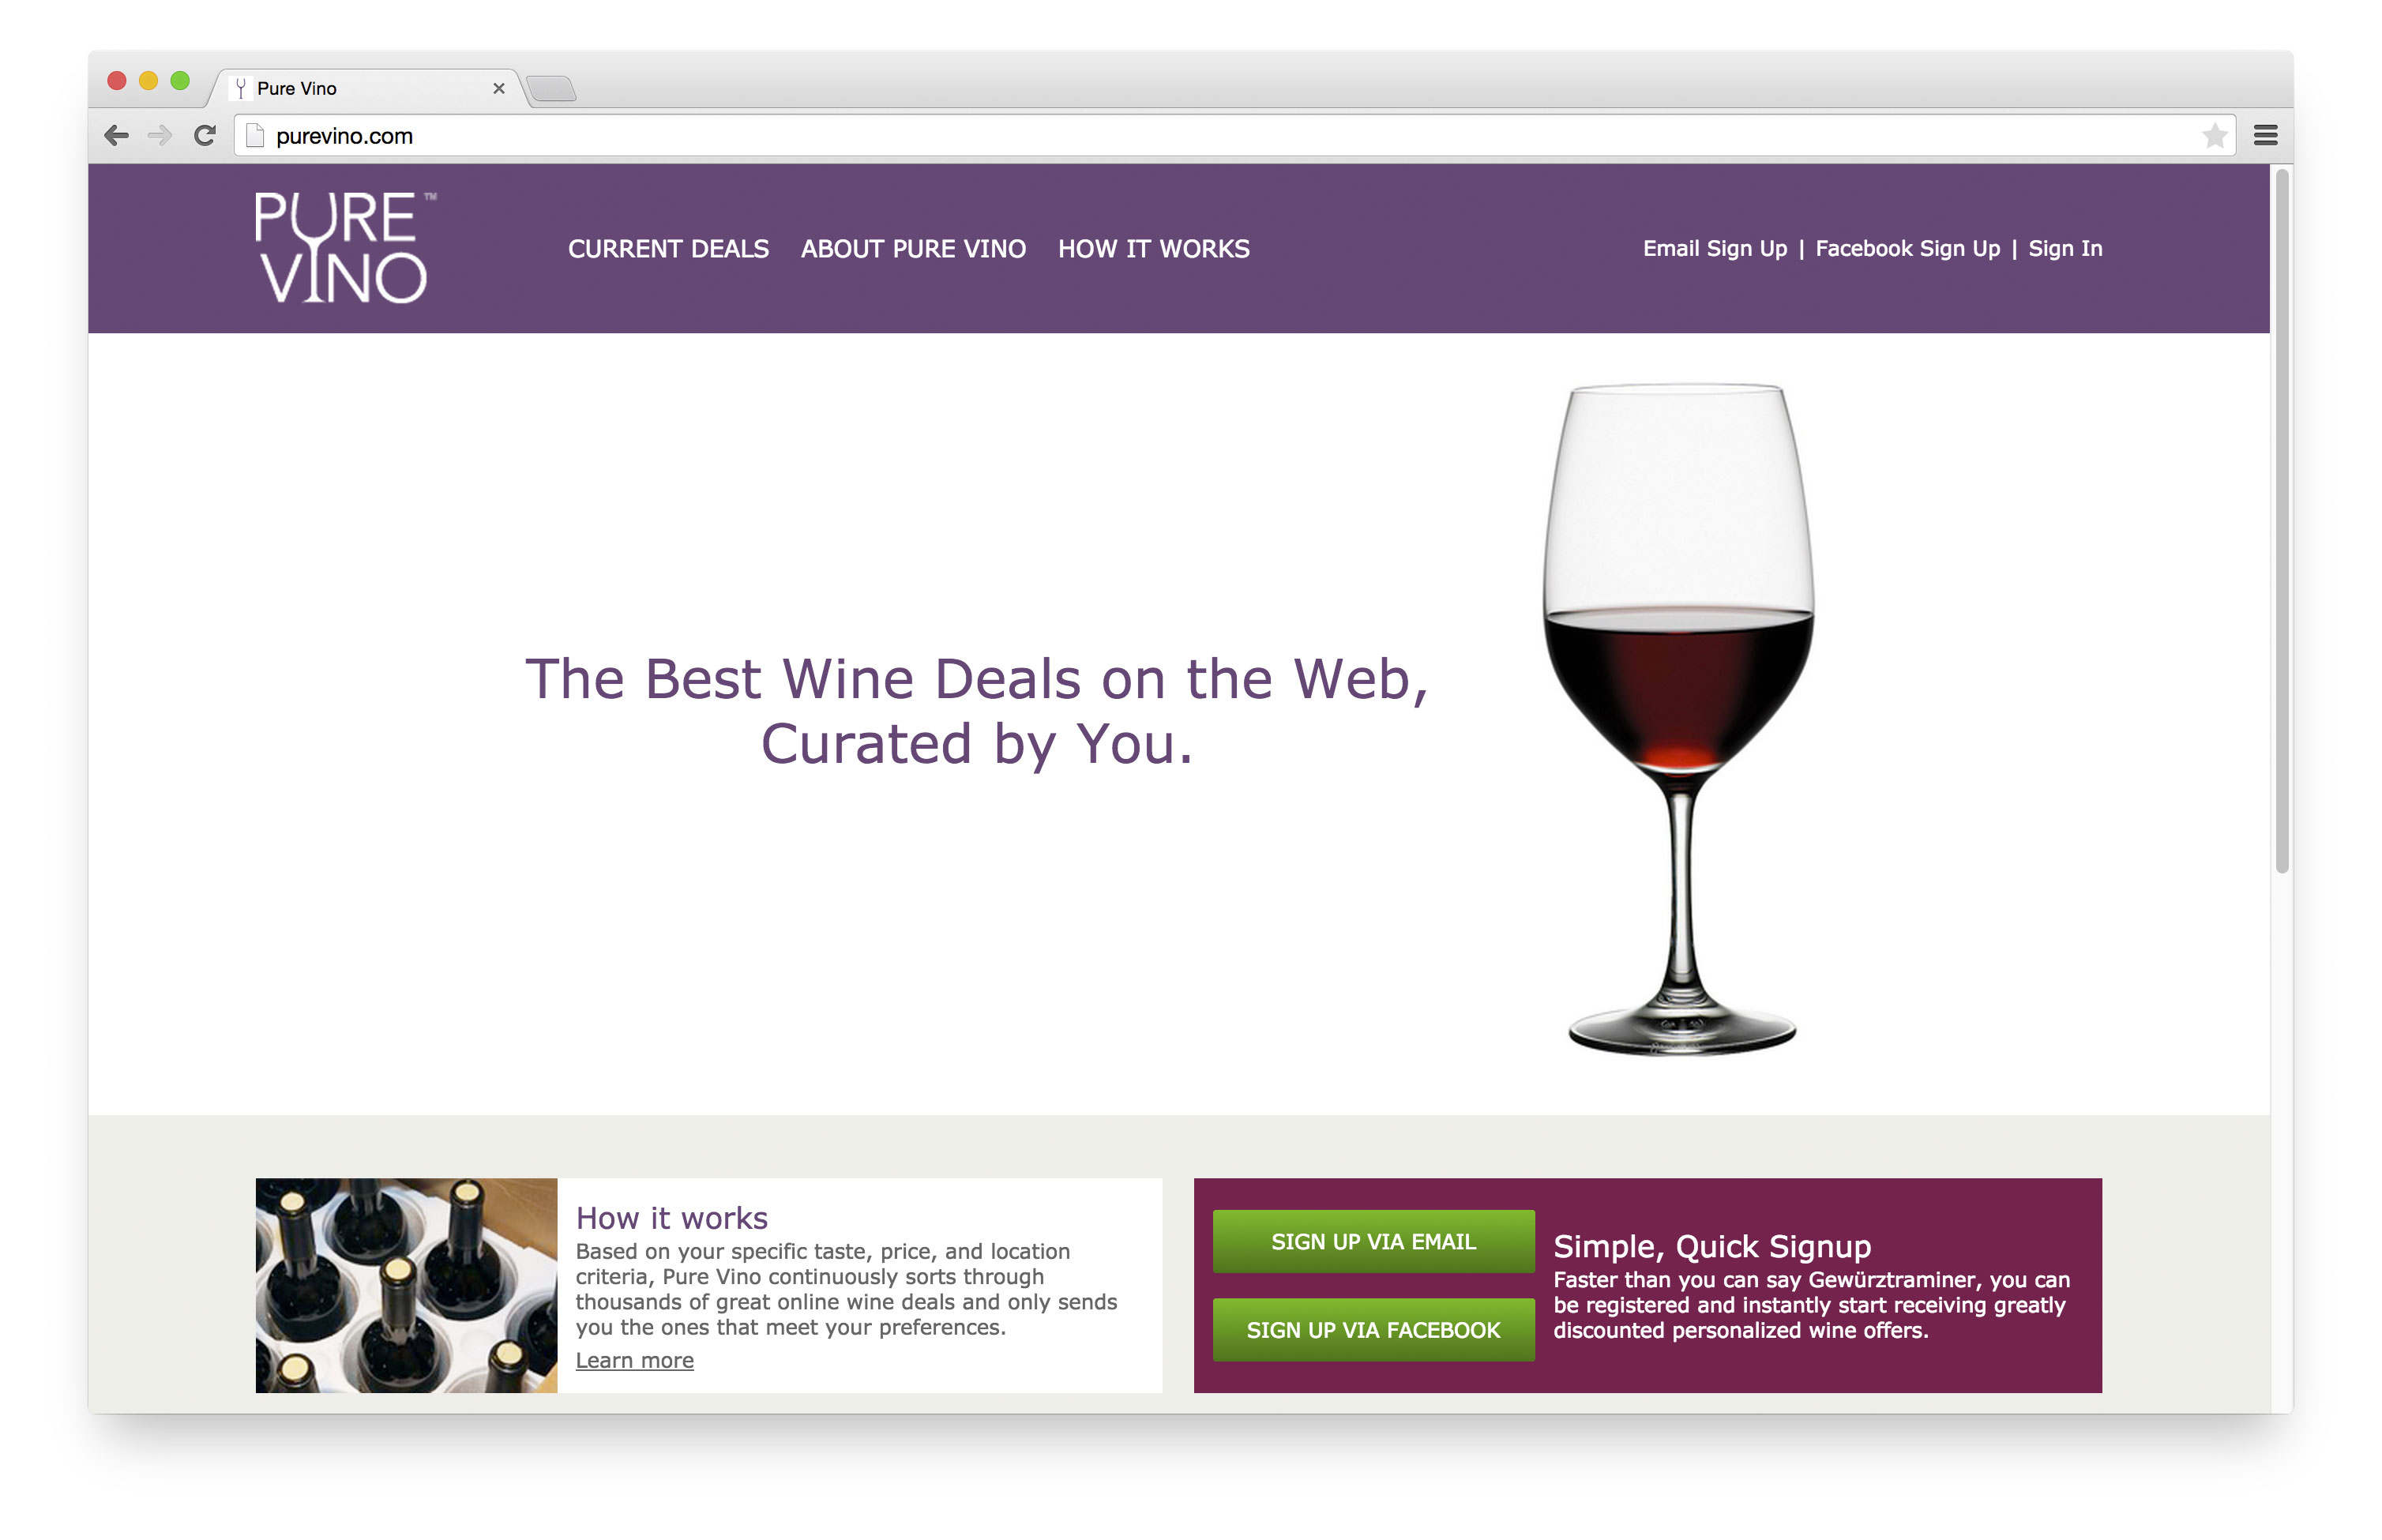 Pure Vino - Home Page - on desktop